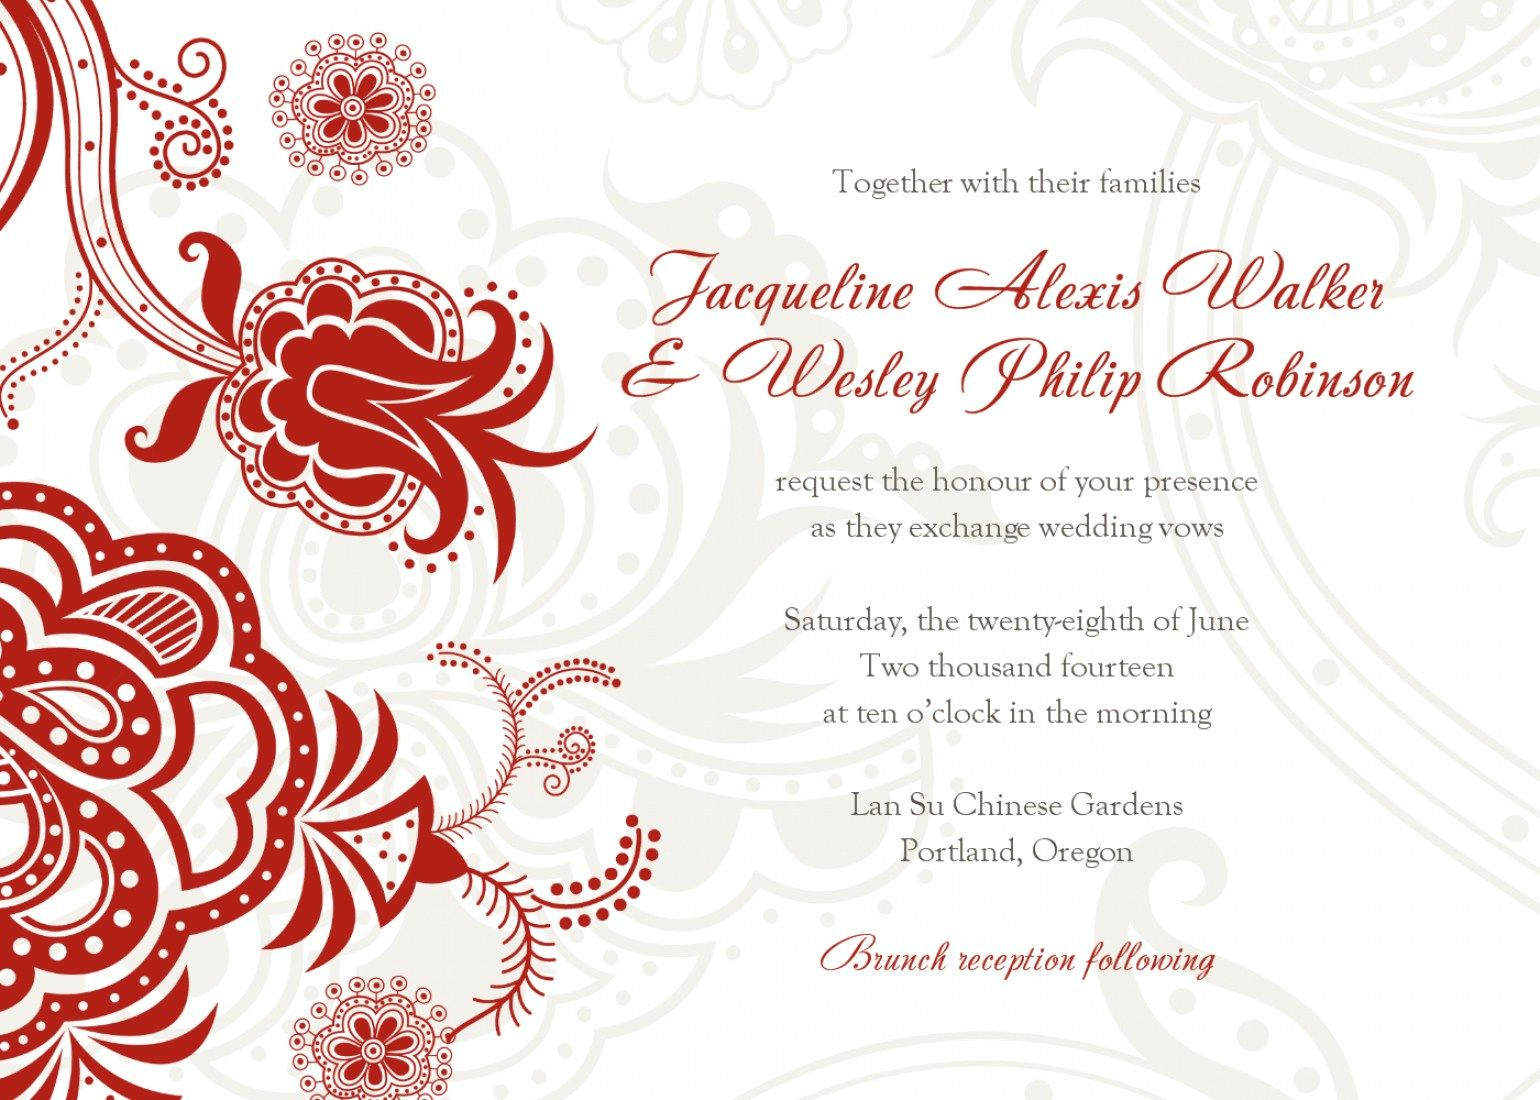 Amazing 30 Invitation Red Rose Wedding | Pinterest | Red rose ...